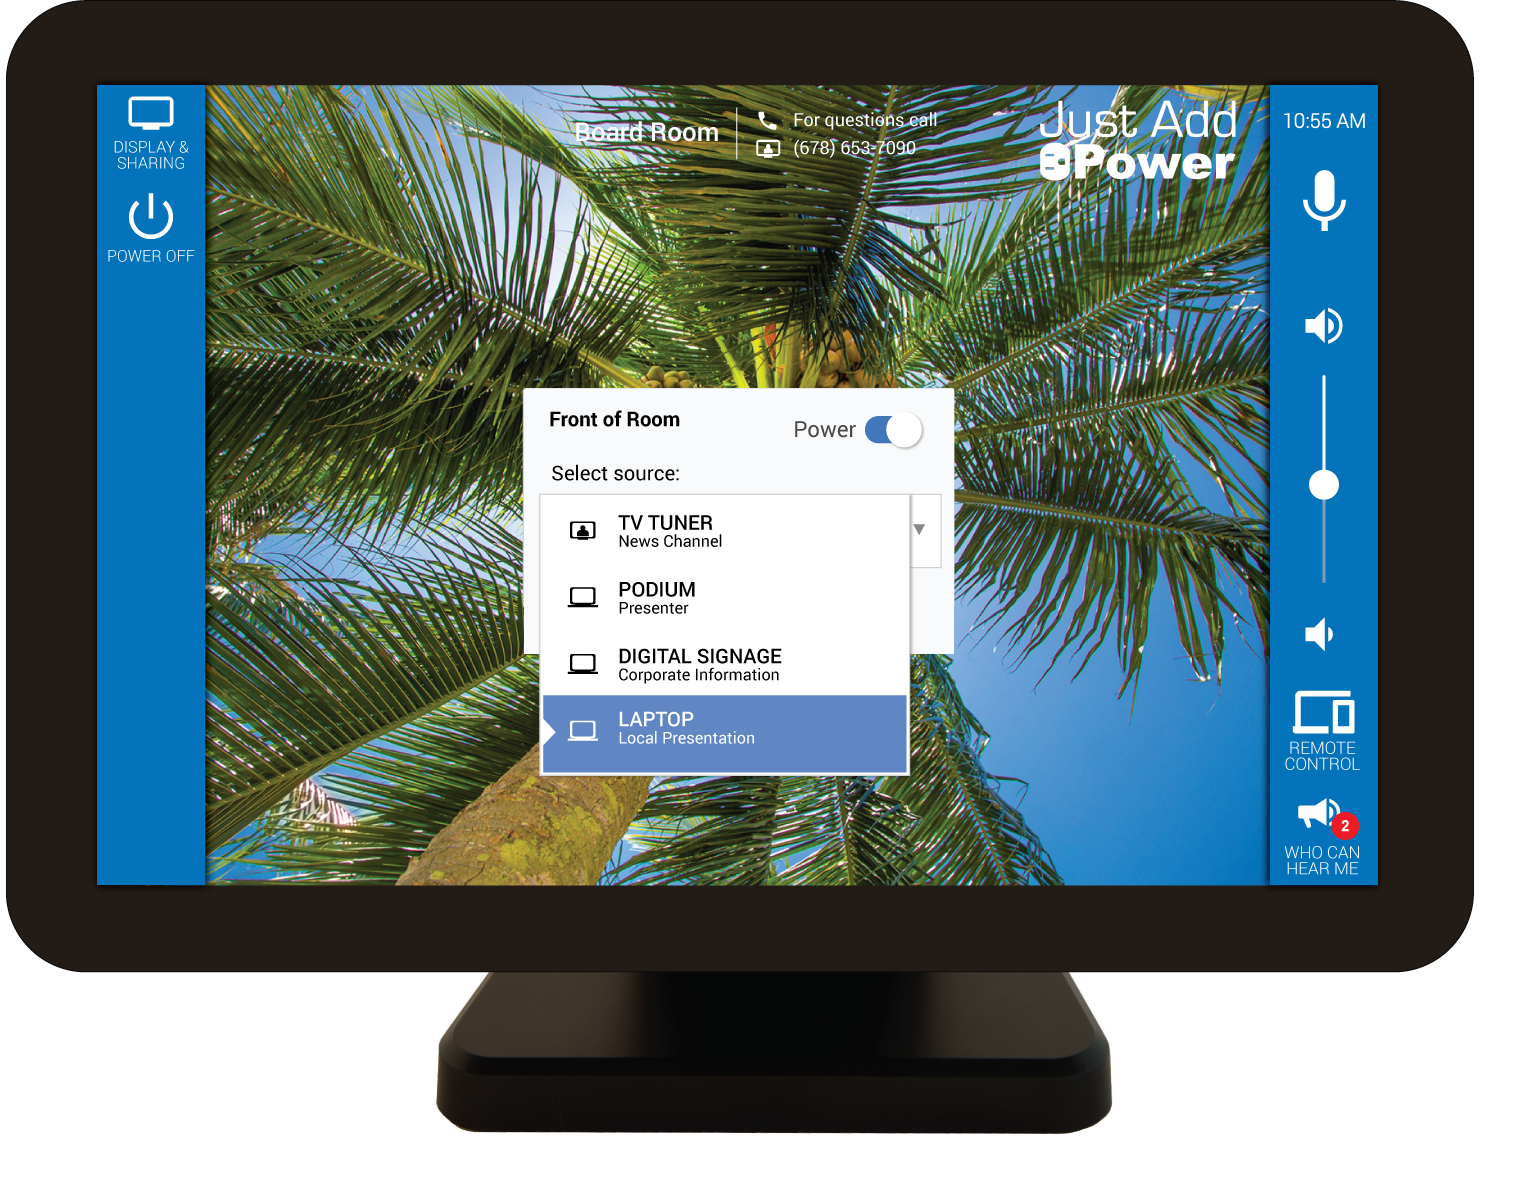 control Just Add Power AV-over-IP systems with Mira Connect